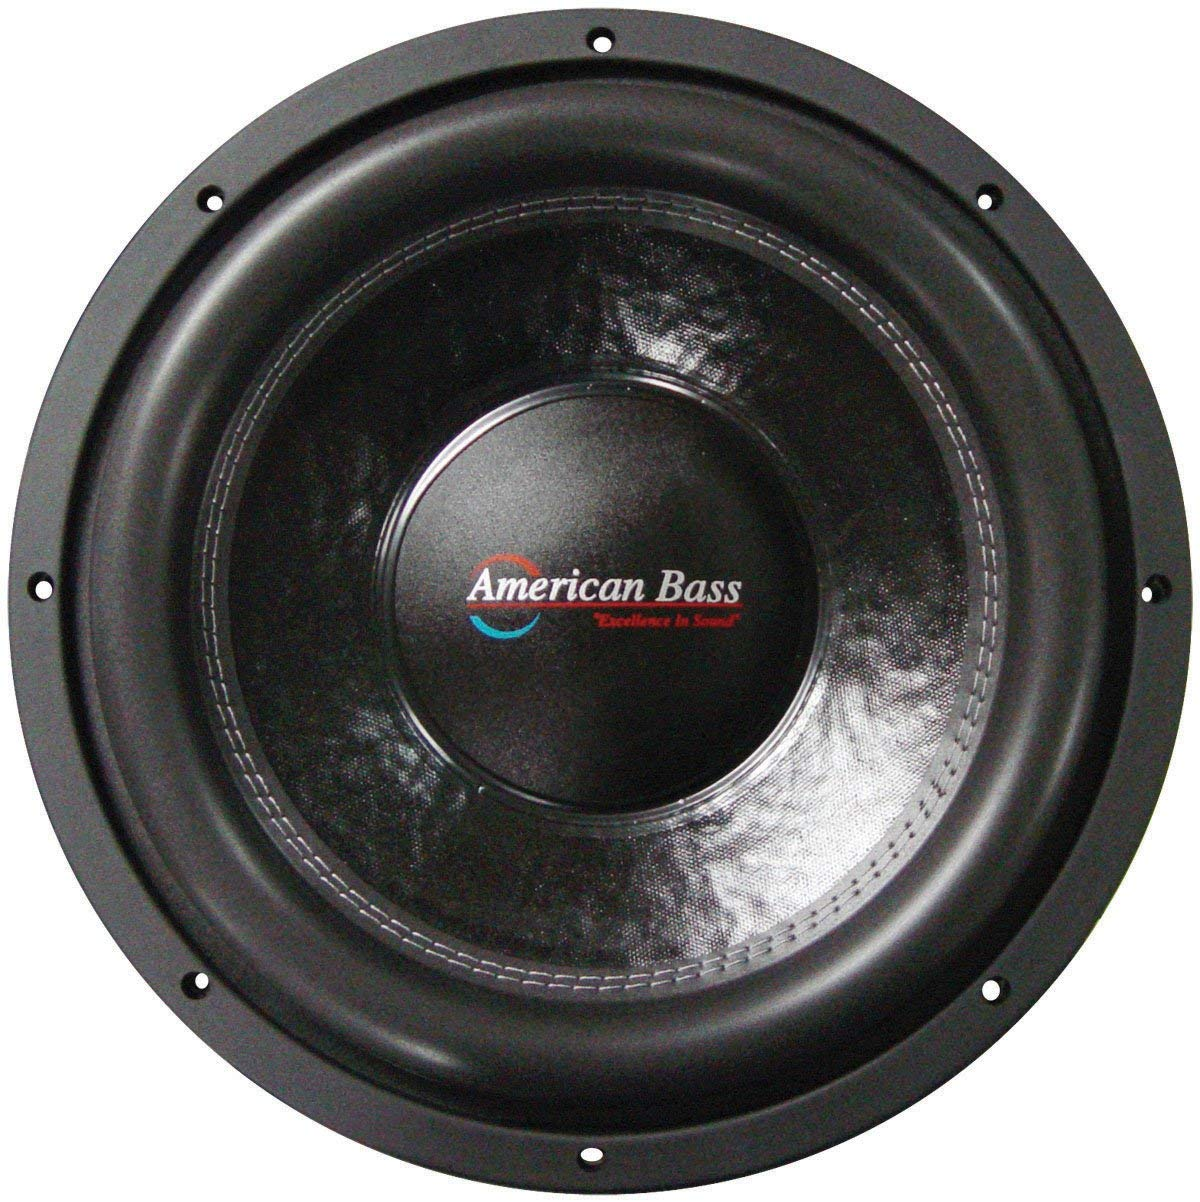 "finding the best 12 inch subwoofer - American Bass USA XFL 1244 2000W Max Dual 4Ω 12"" Subwoofer"